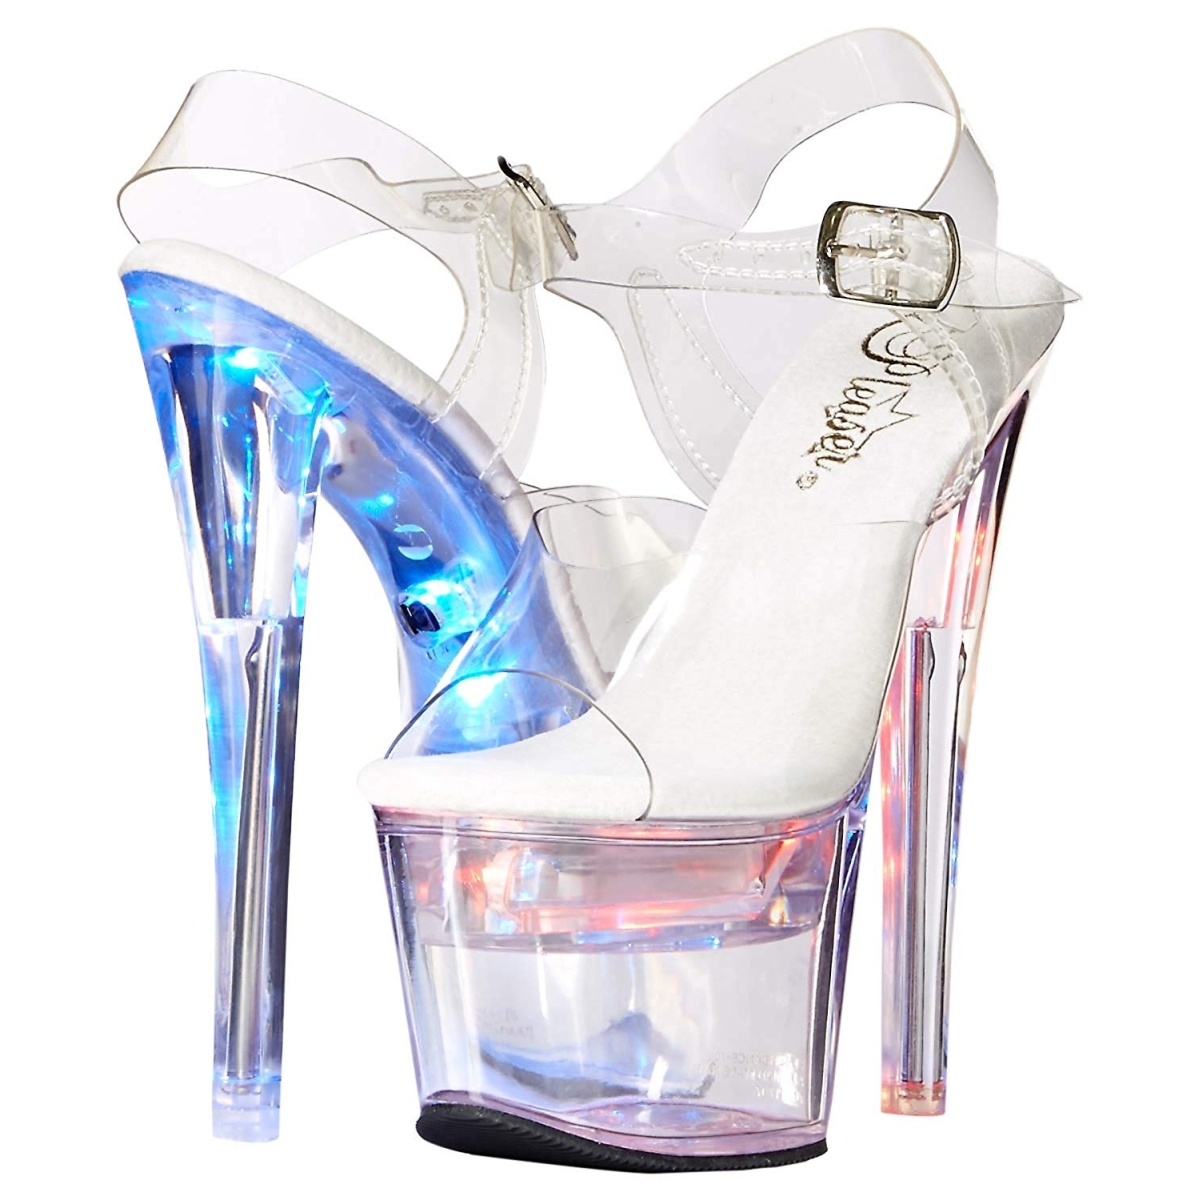 White 18 cm FLASHDANCE 708 LED light platform stripper high heel shoes